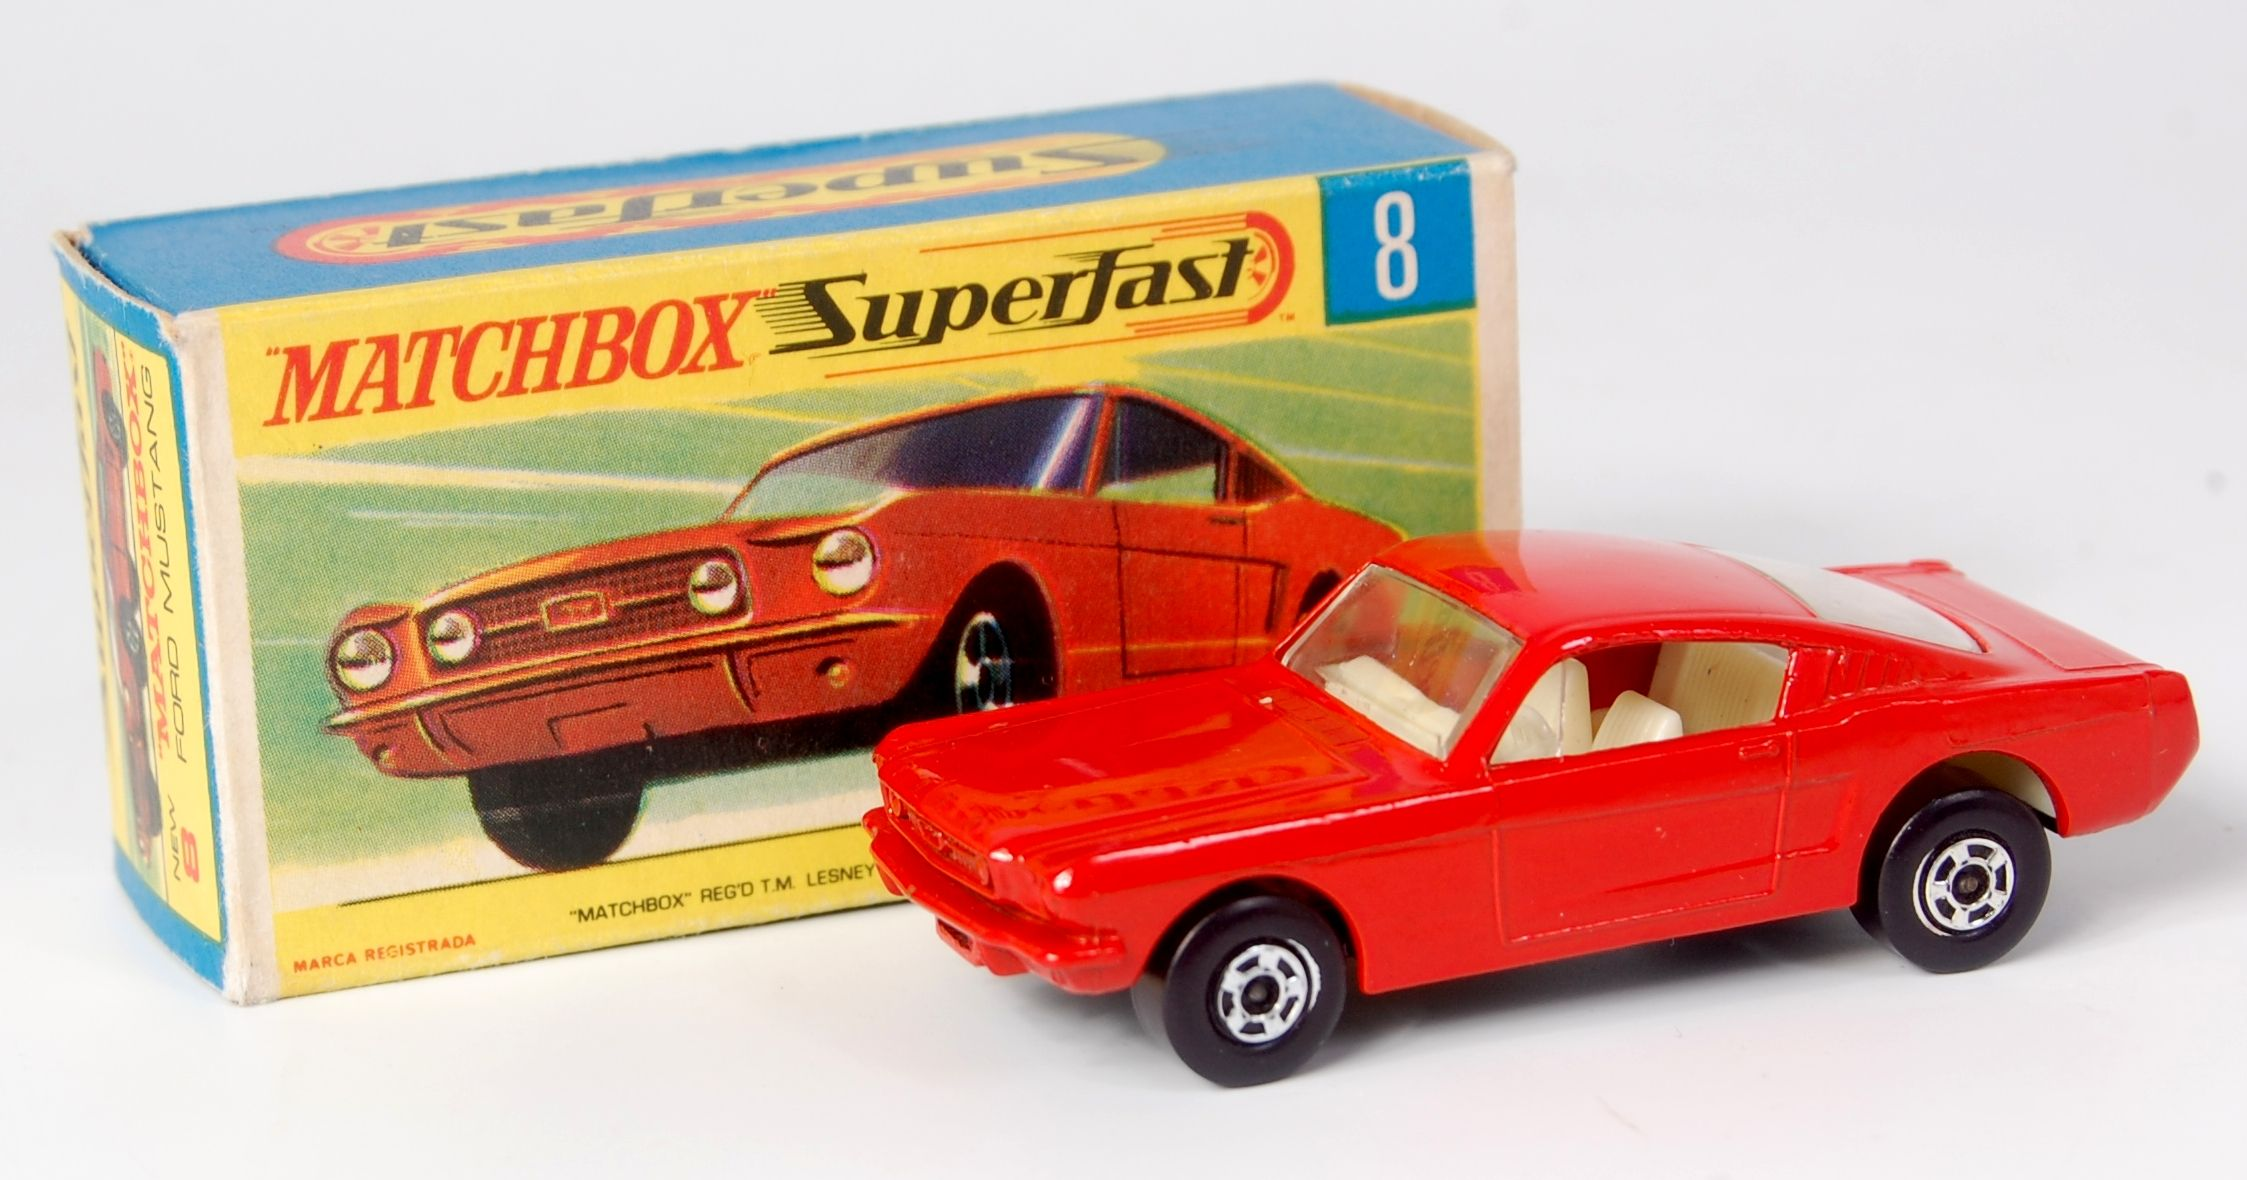 Lot 2333 matchbox superfast no 8 ford mustang orange red body ivory interior mbg